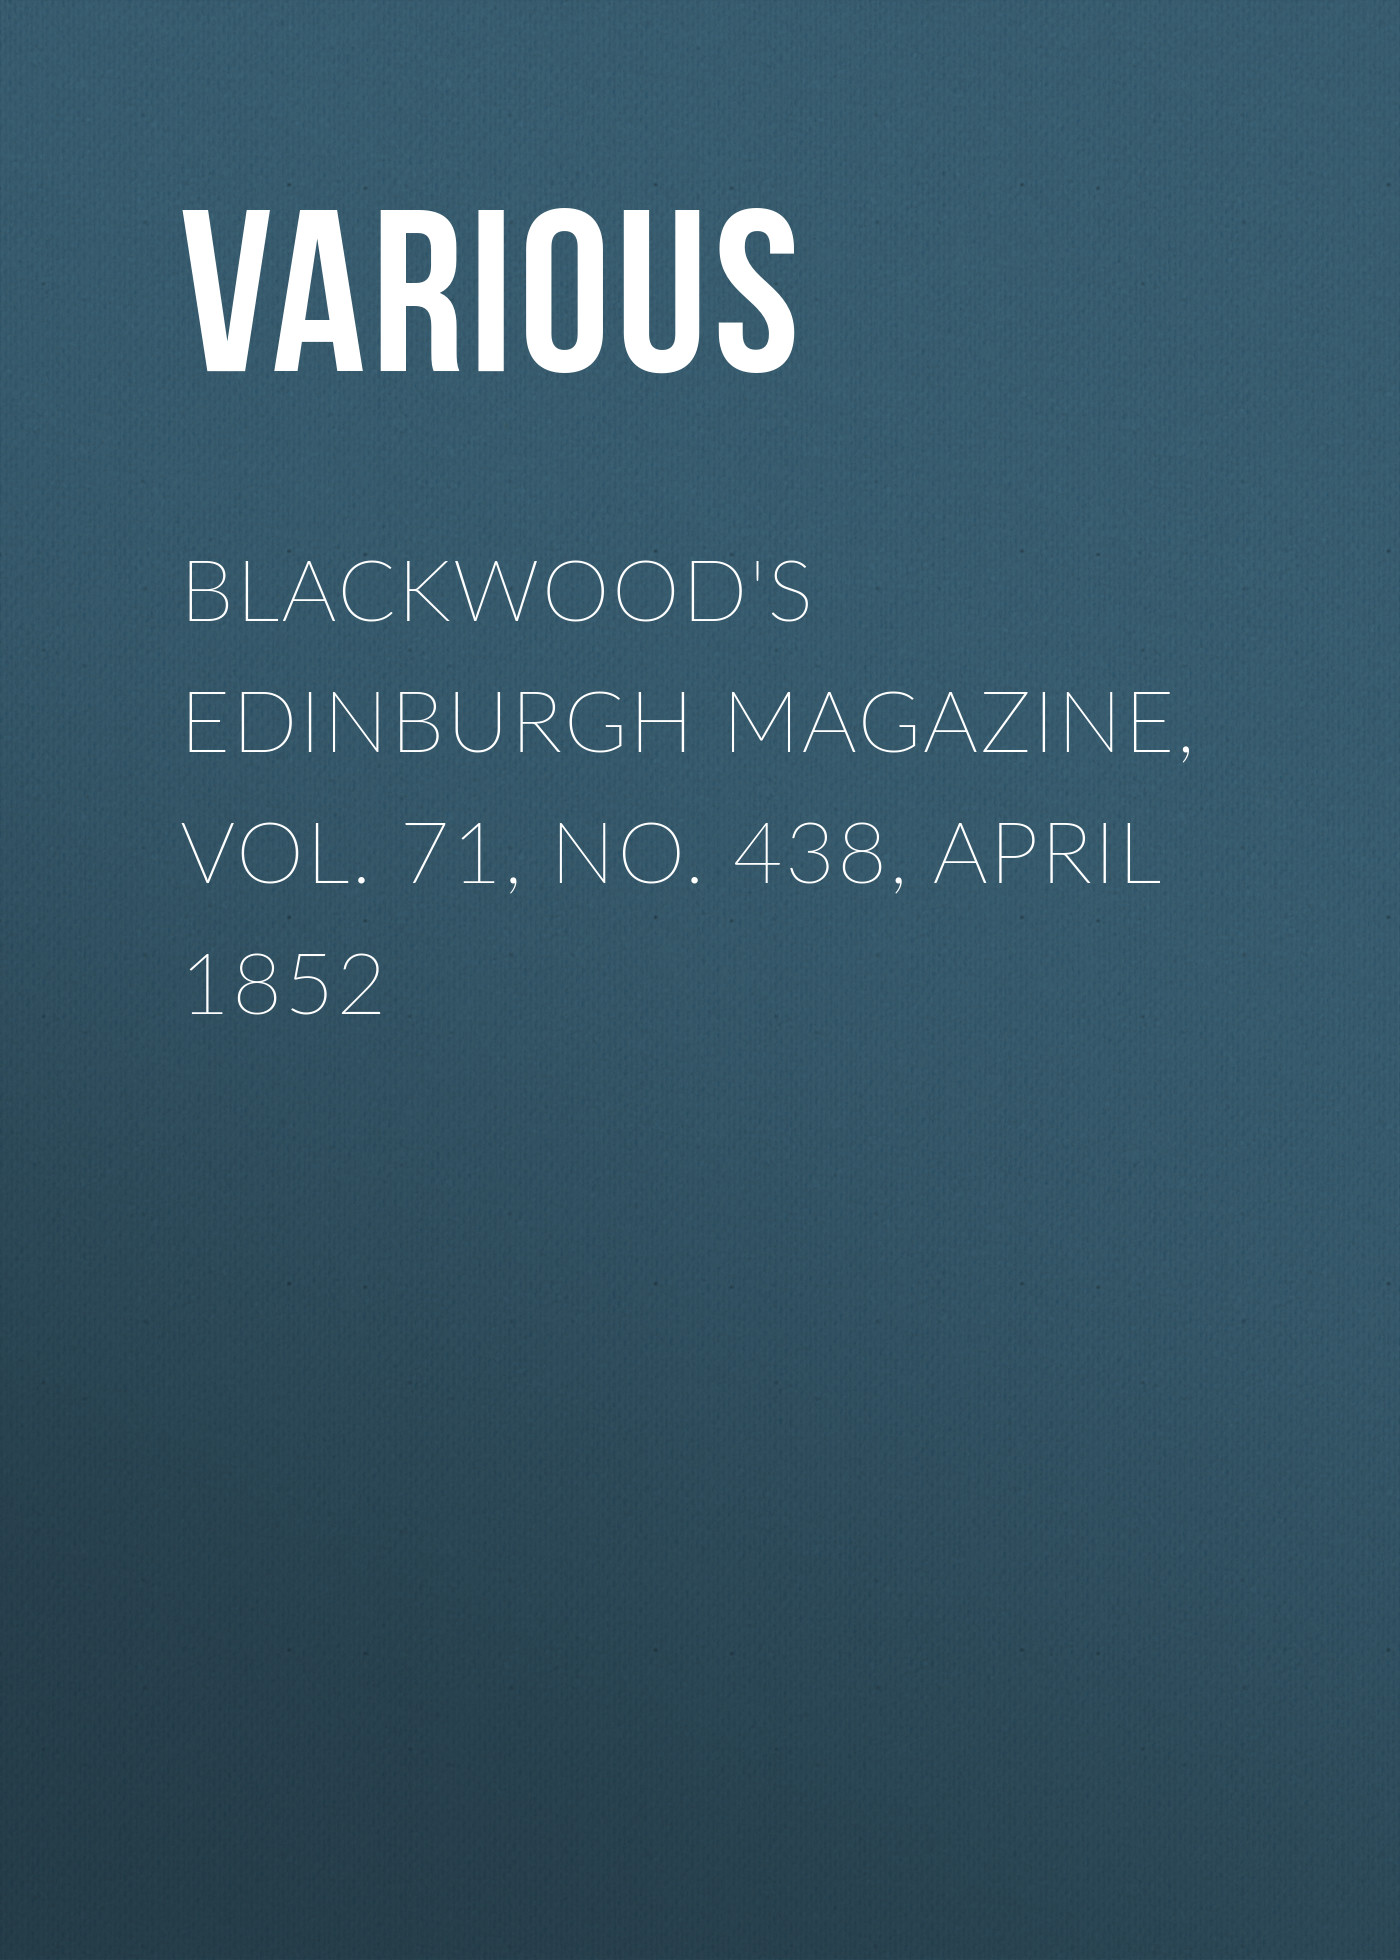 Фото - Various Blackwood's Edinburgh Magazine, Vol. 71, No. 438, April 1852 various harper s new monthly magazine no xxiii april 1852 vol iv